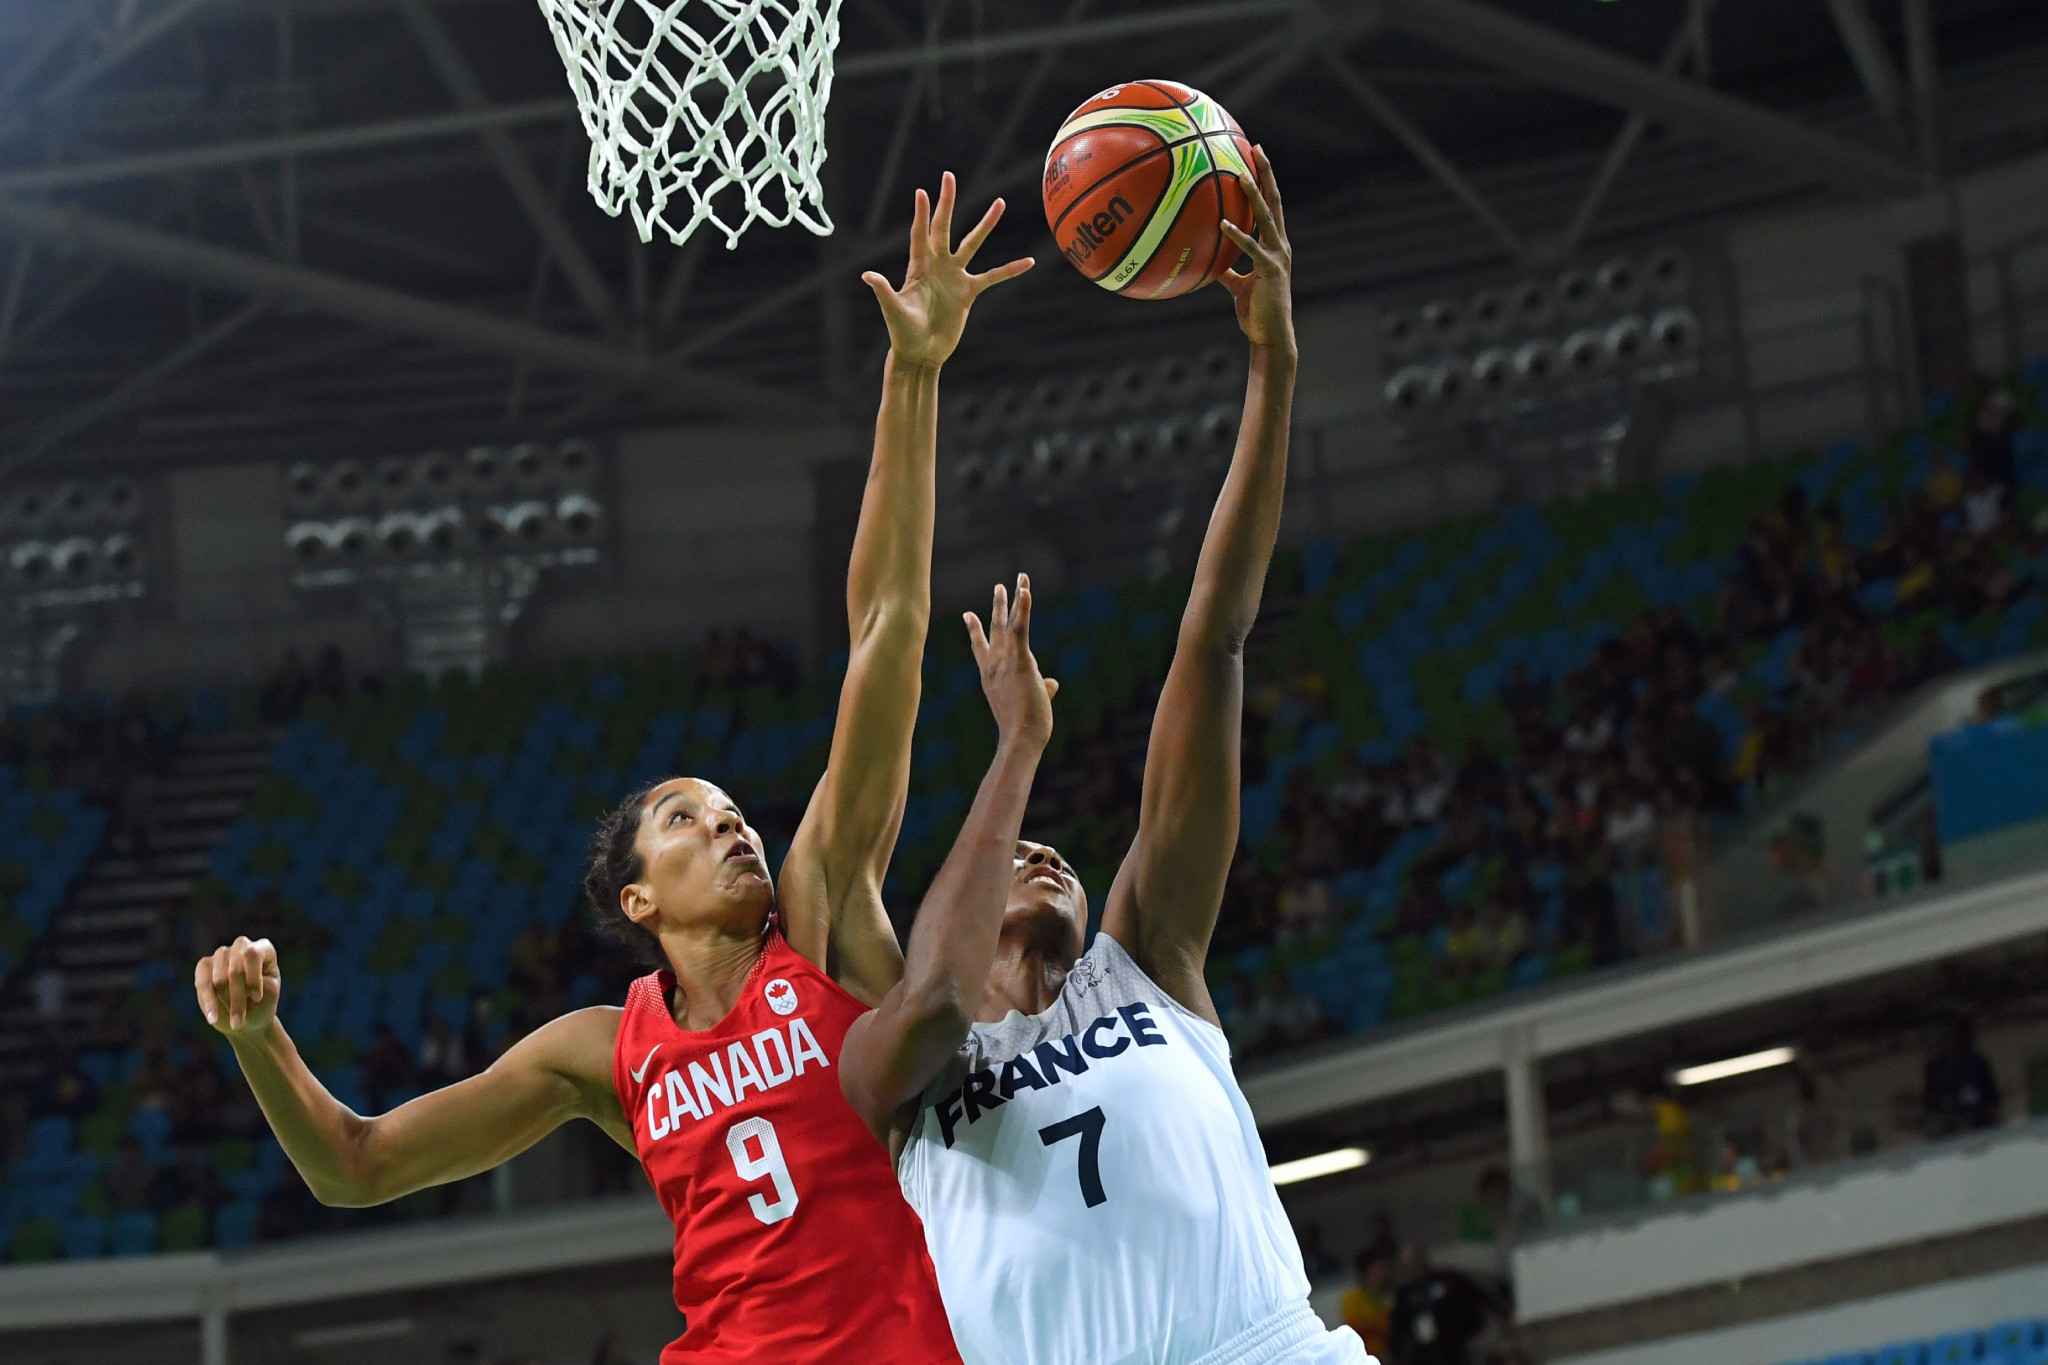 Miranda Ayim is set to make her third and final appearance at the Olympics as part of Canada's women's basketball team ©Getty Images